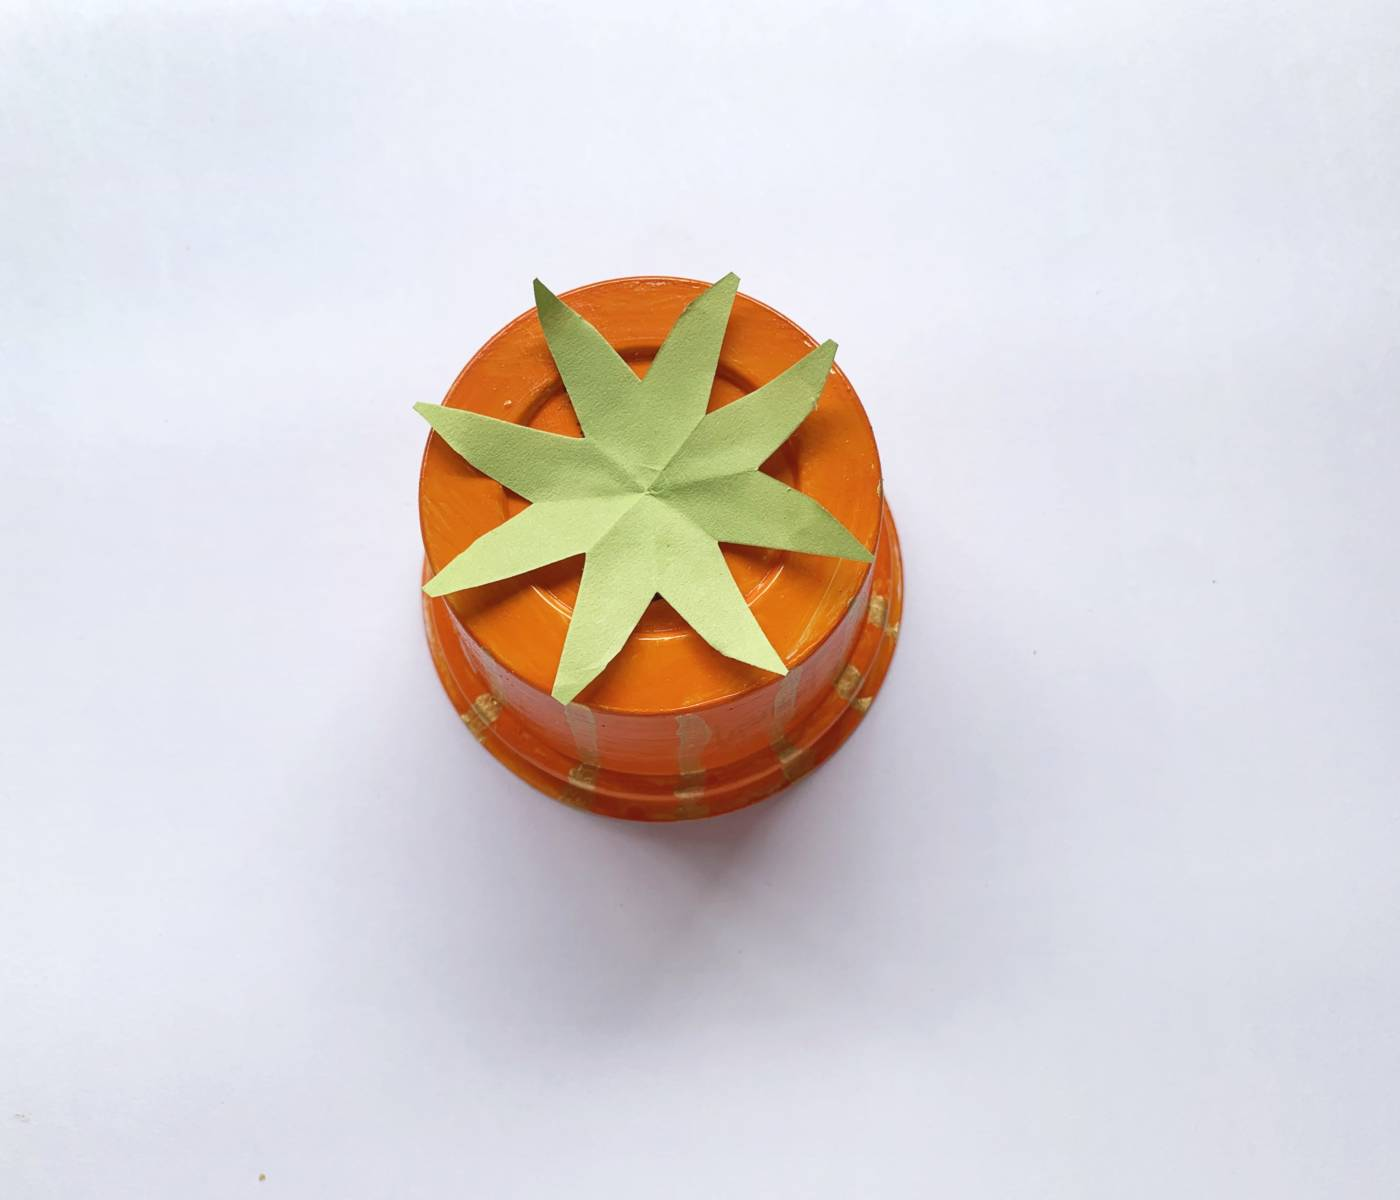 orange cup with a green piece of paper shaped like an eight-pointed star on top